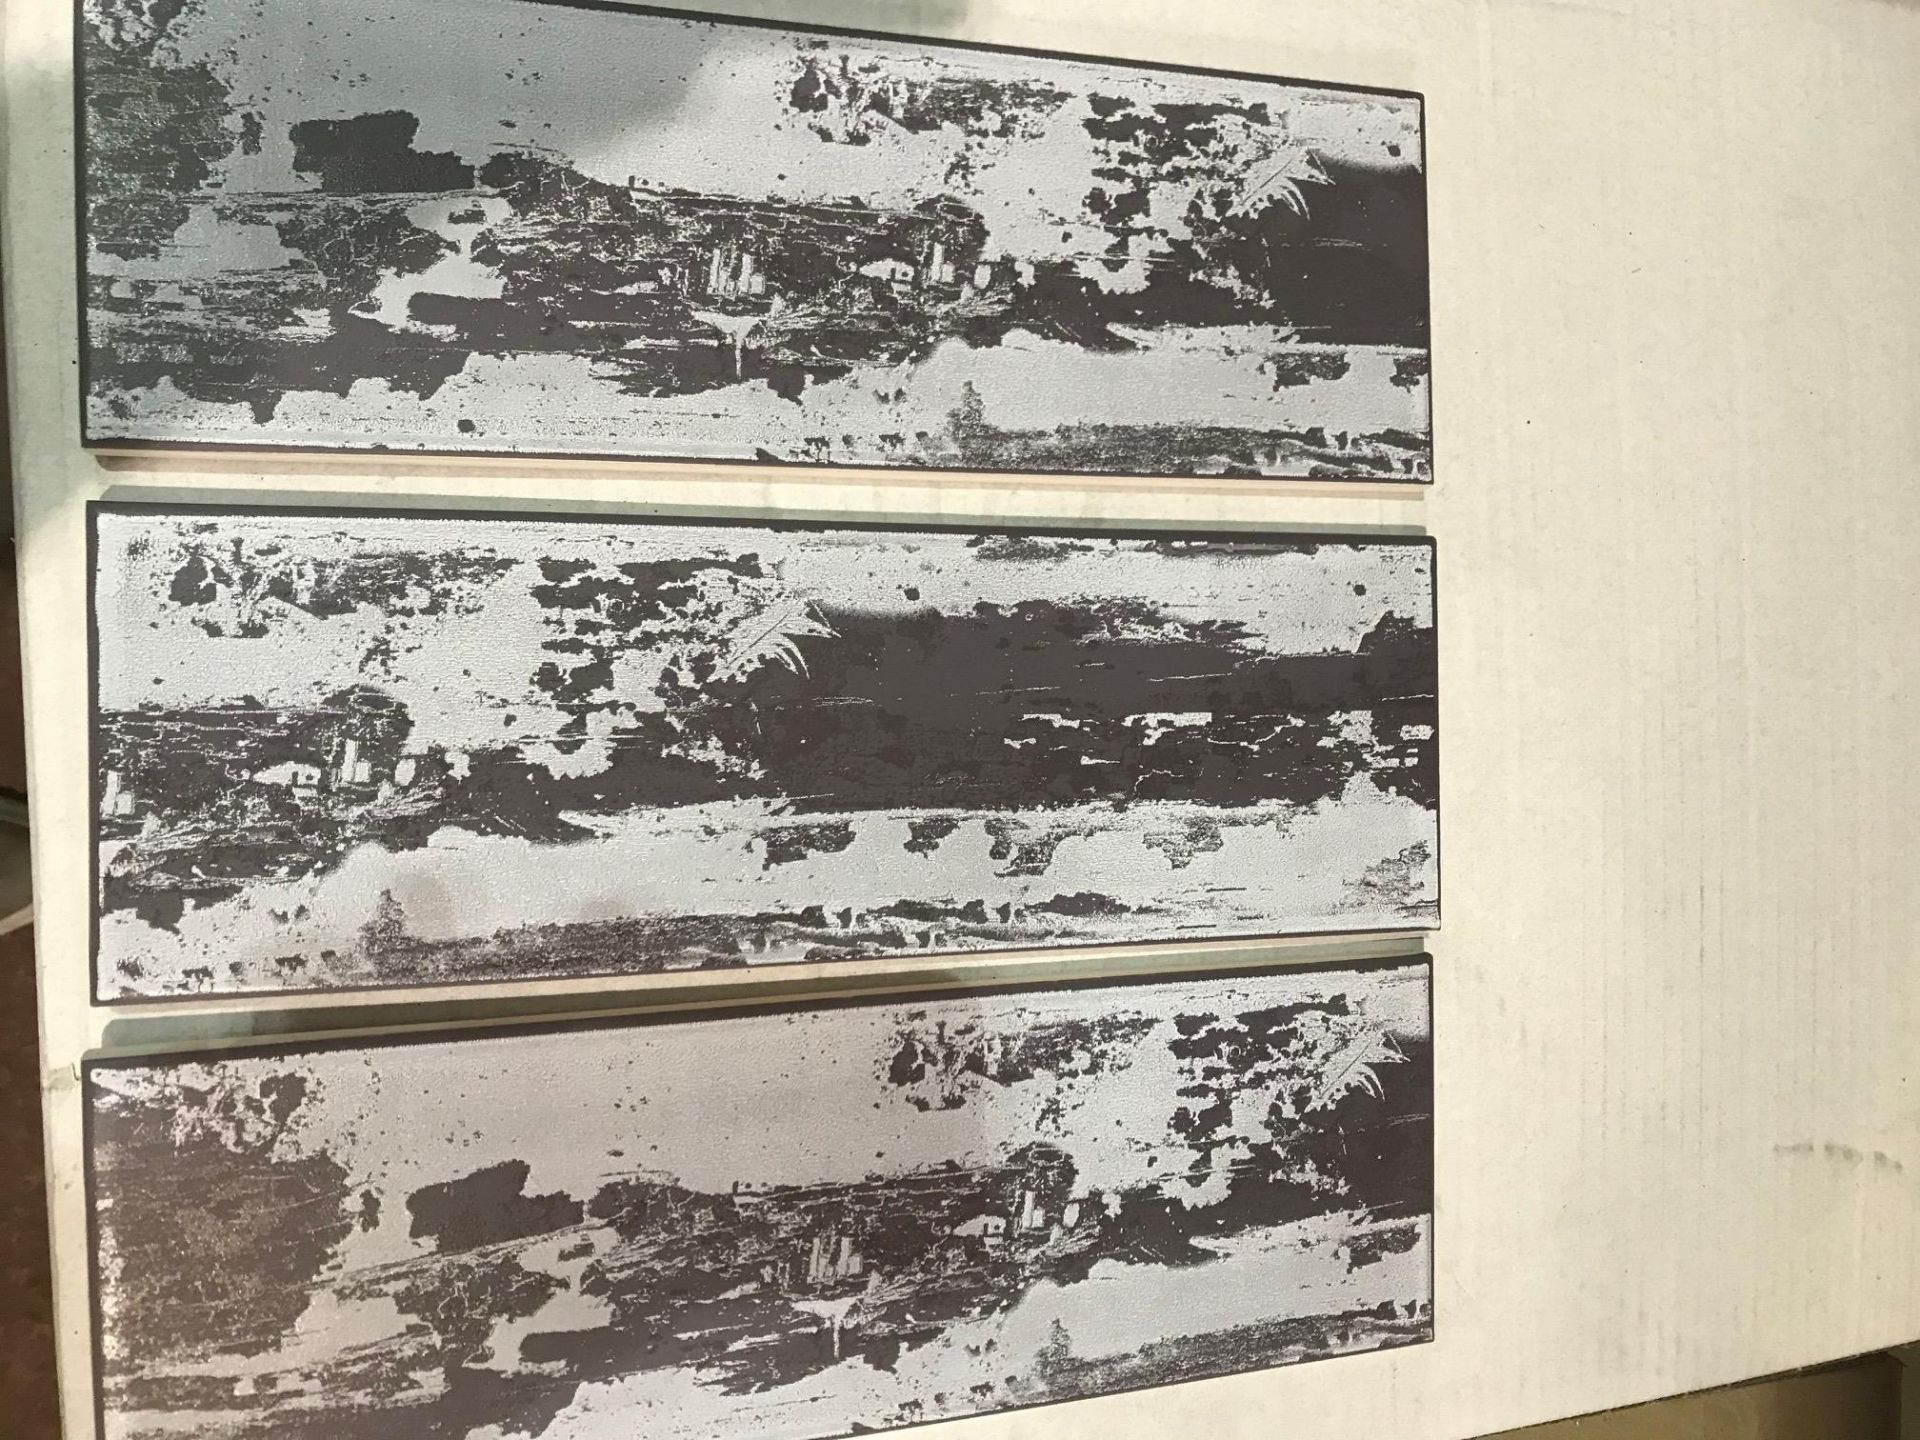 Lot 460 - 5.1m2 Aura Mulberry Satin Ceramic Wall tile. (L)300mm (W)100mm per tile. Influenced by interior...